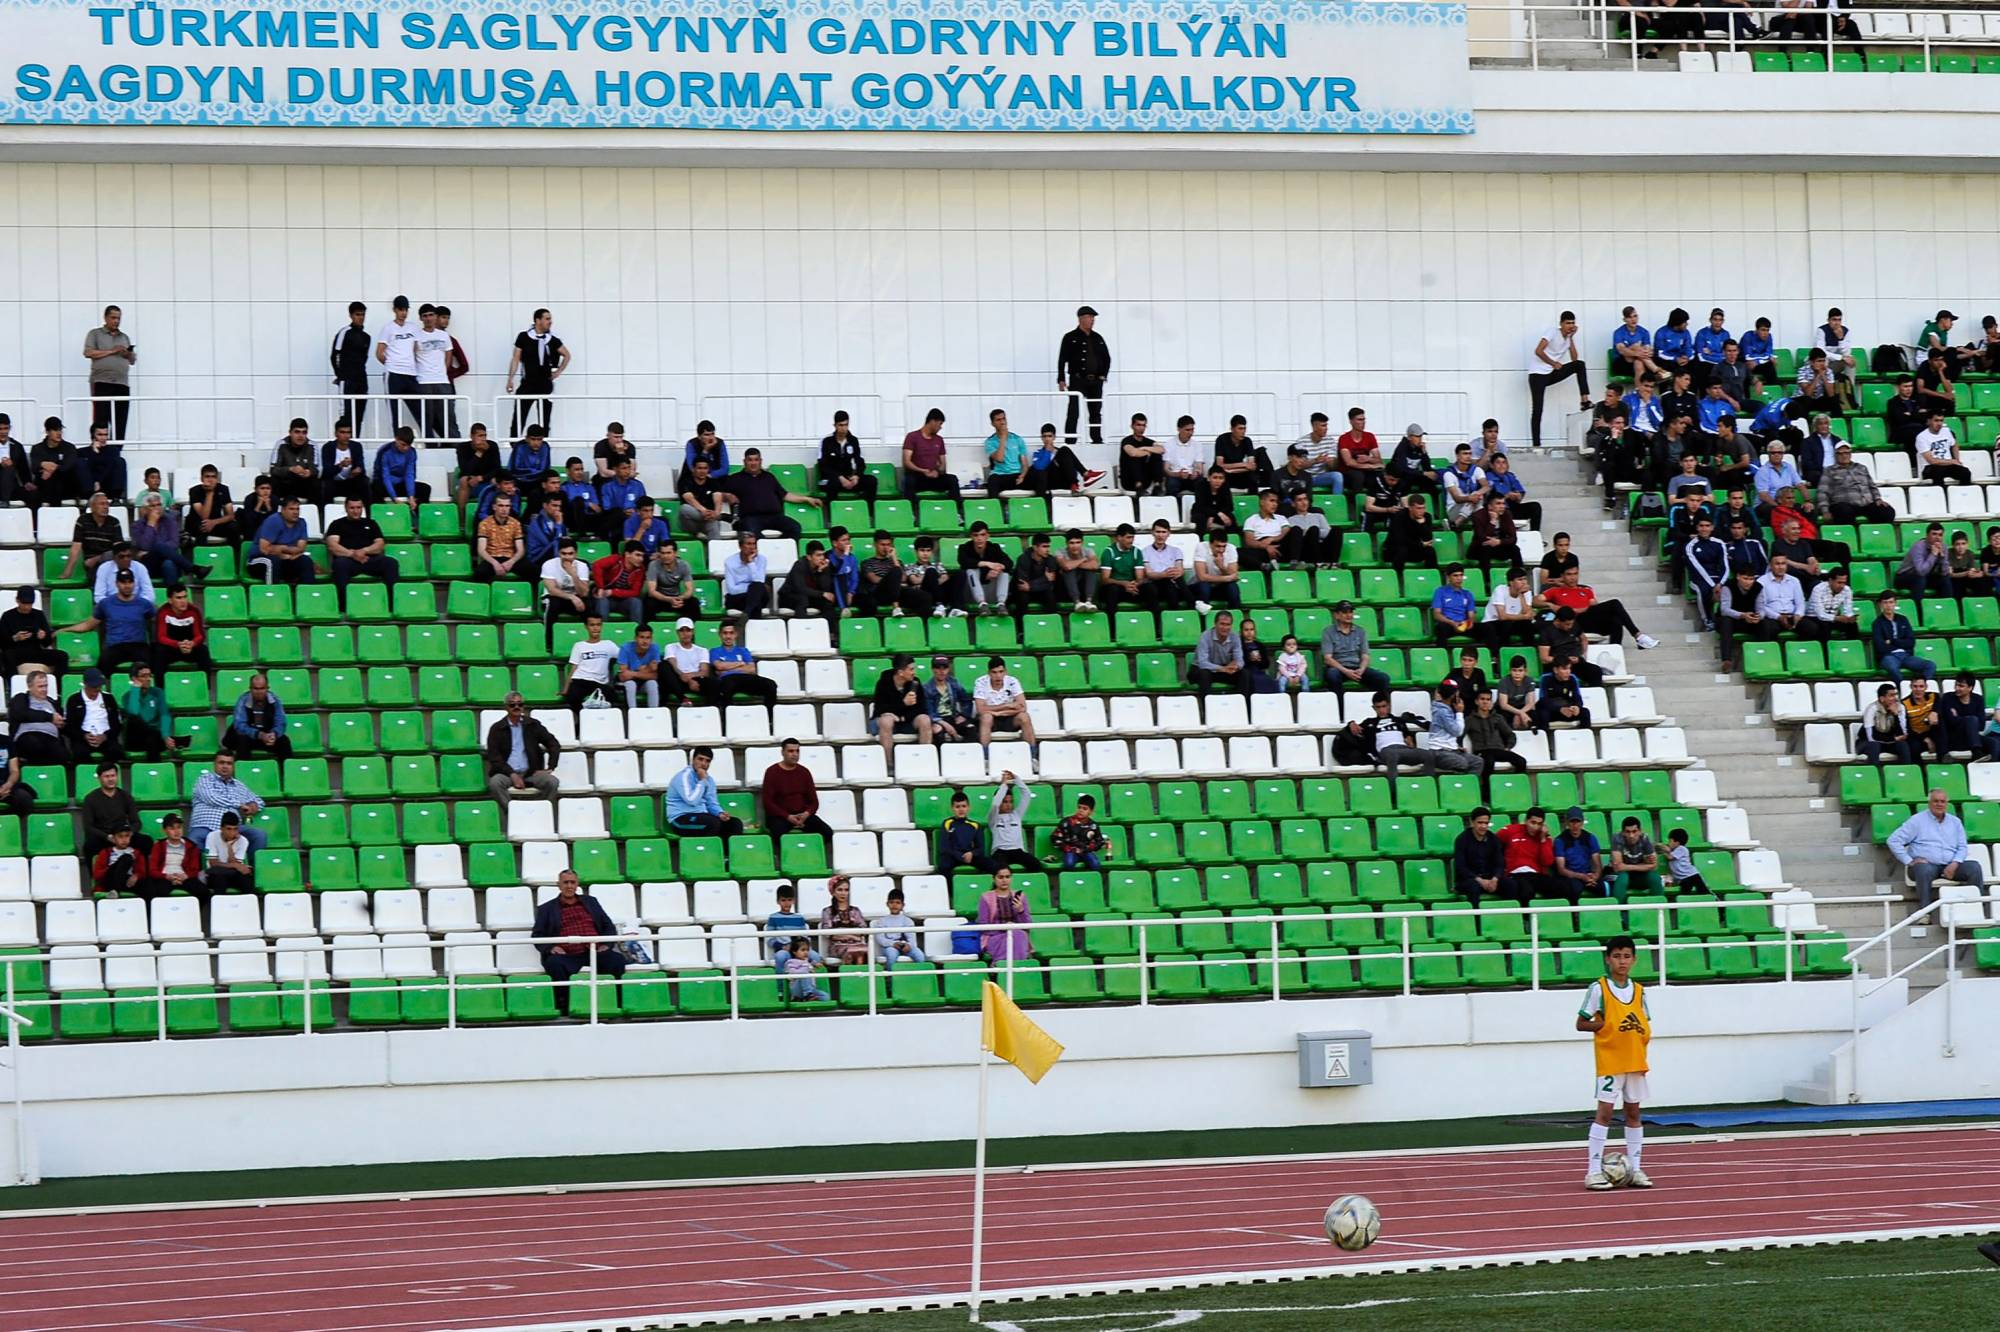 Fans attend a soccer match in Ashgabat on Sunday as Turkmenistan's domestic league resumes play. | AFP-JIJI